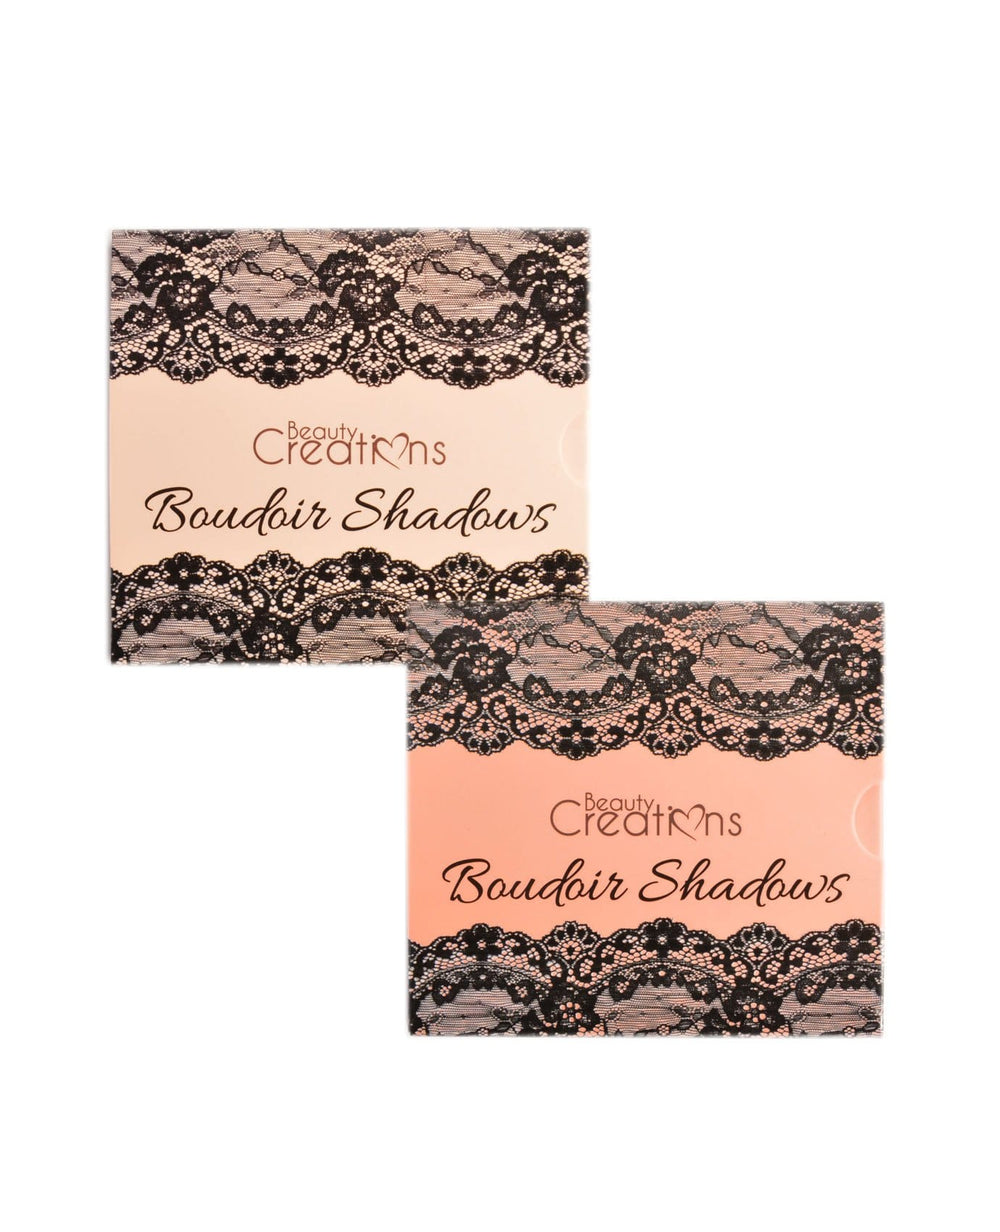 Beauty Creations Boudoir Shadows Gift Set